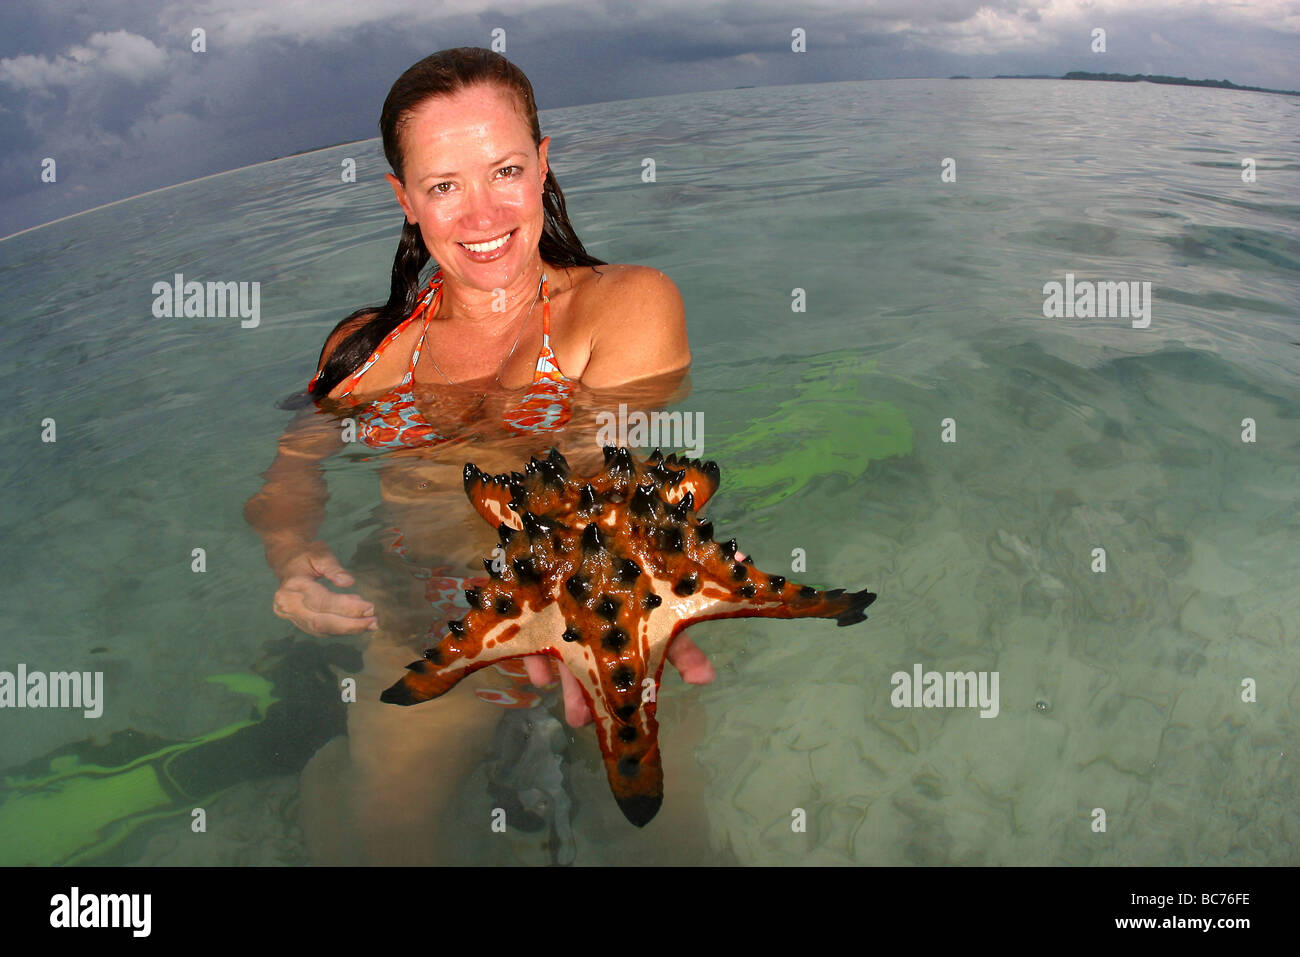 A woman who has been snorkeling holding a Chocolate Chip Starfish ...